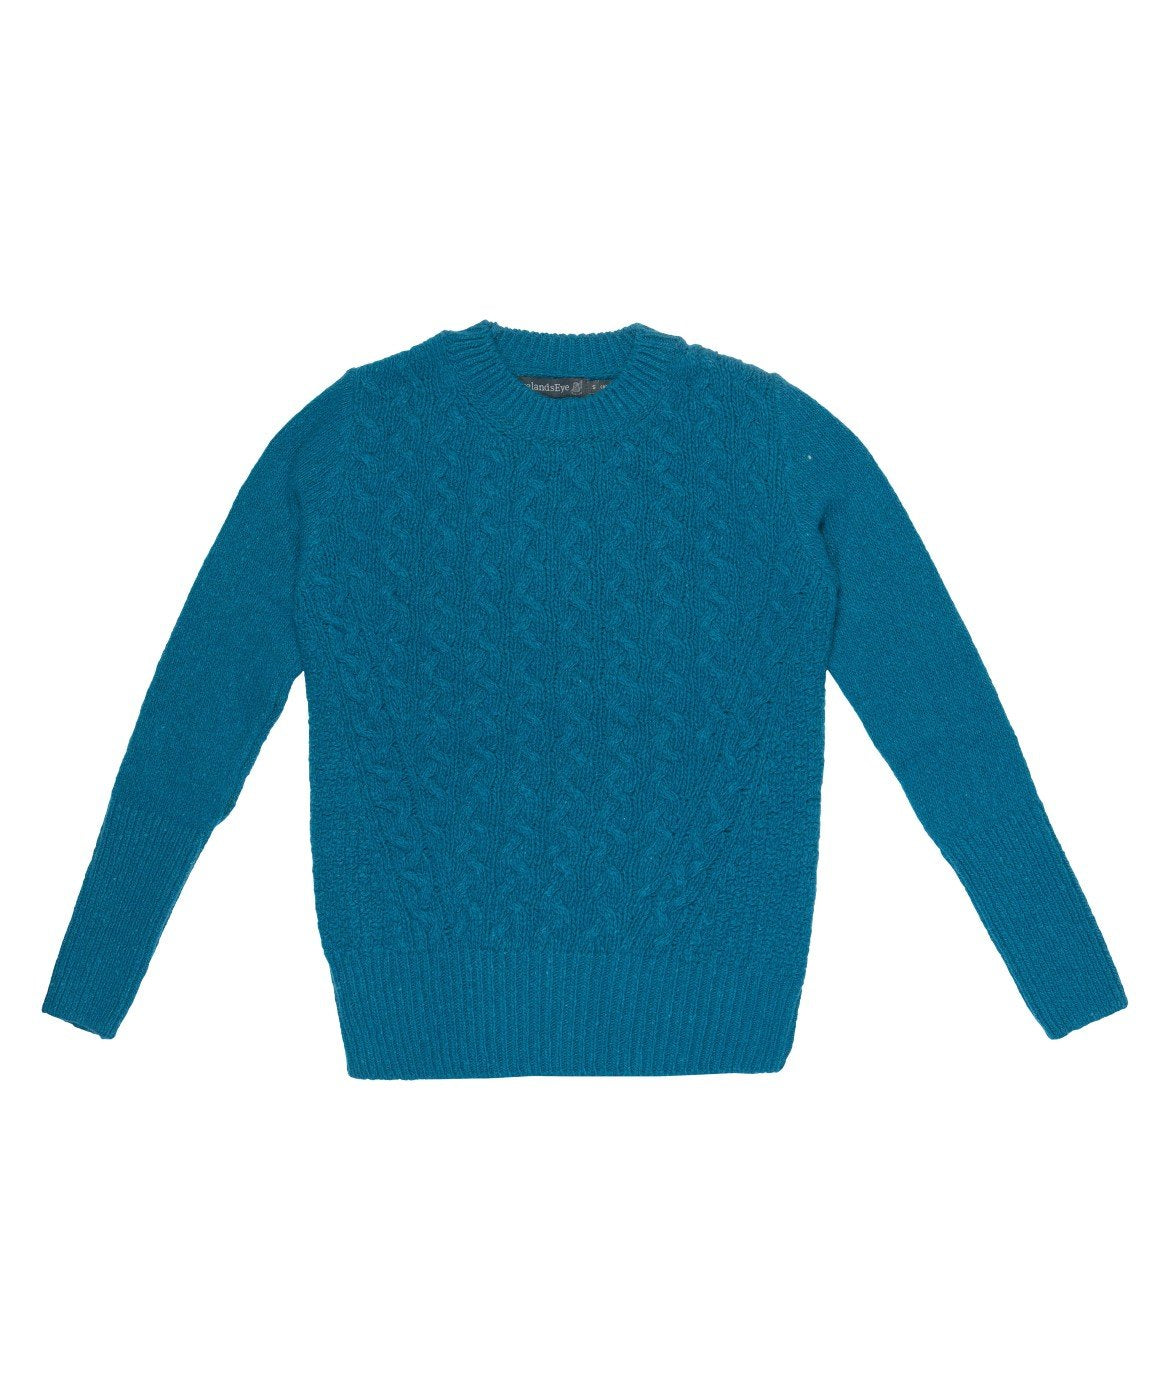 Women's Kilcrea Cable Round Neck Sweater Teal-Harbour